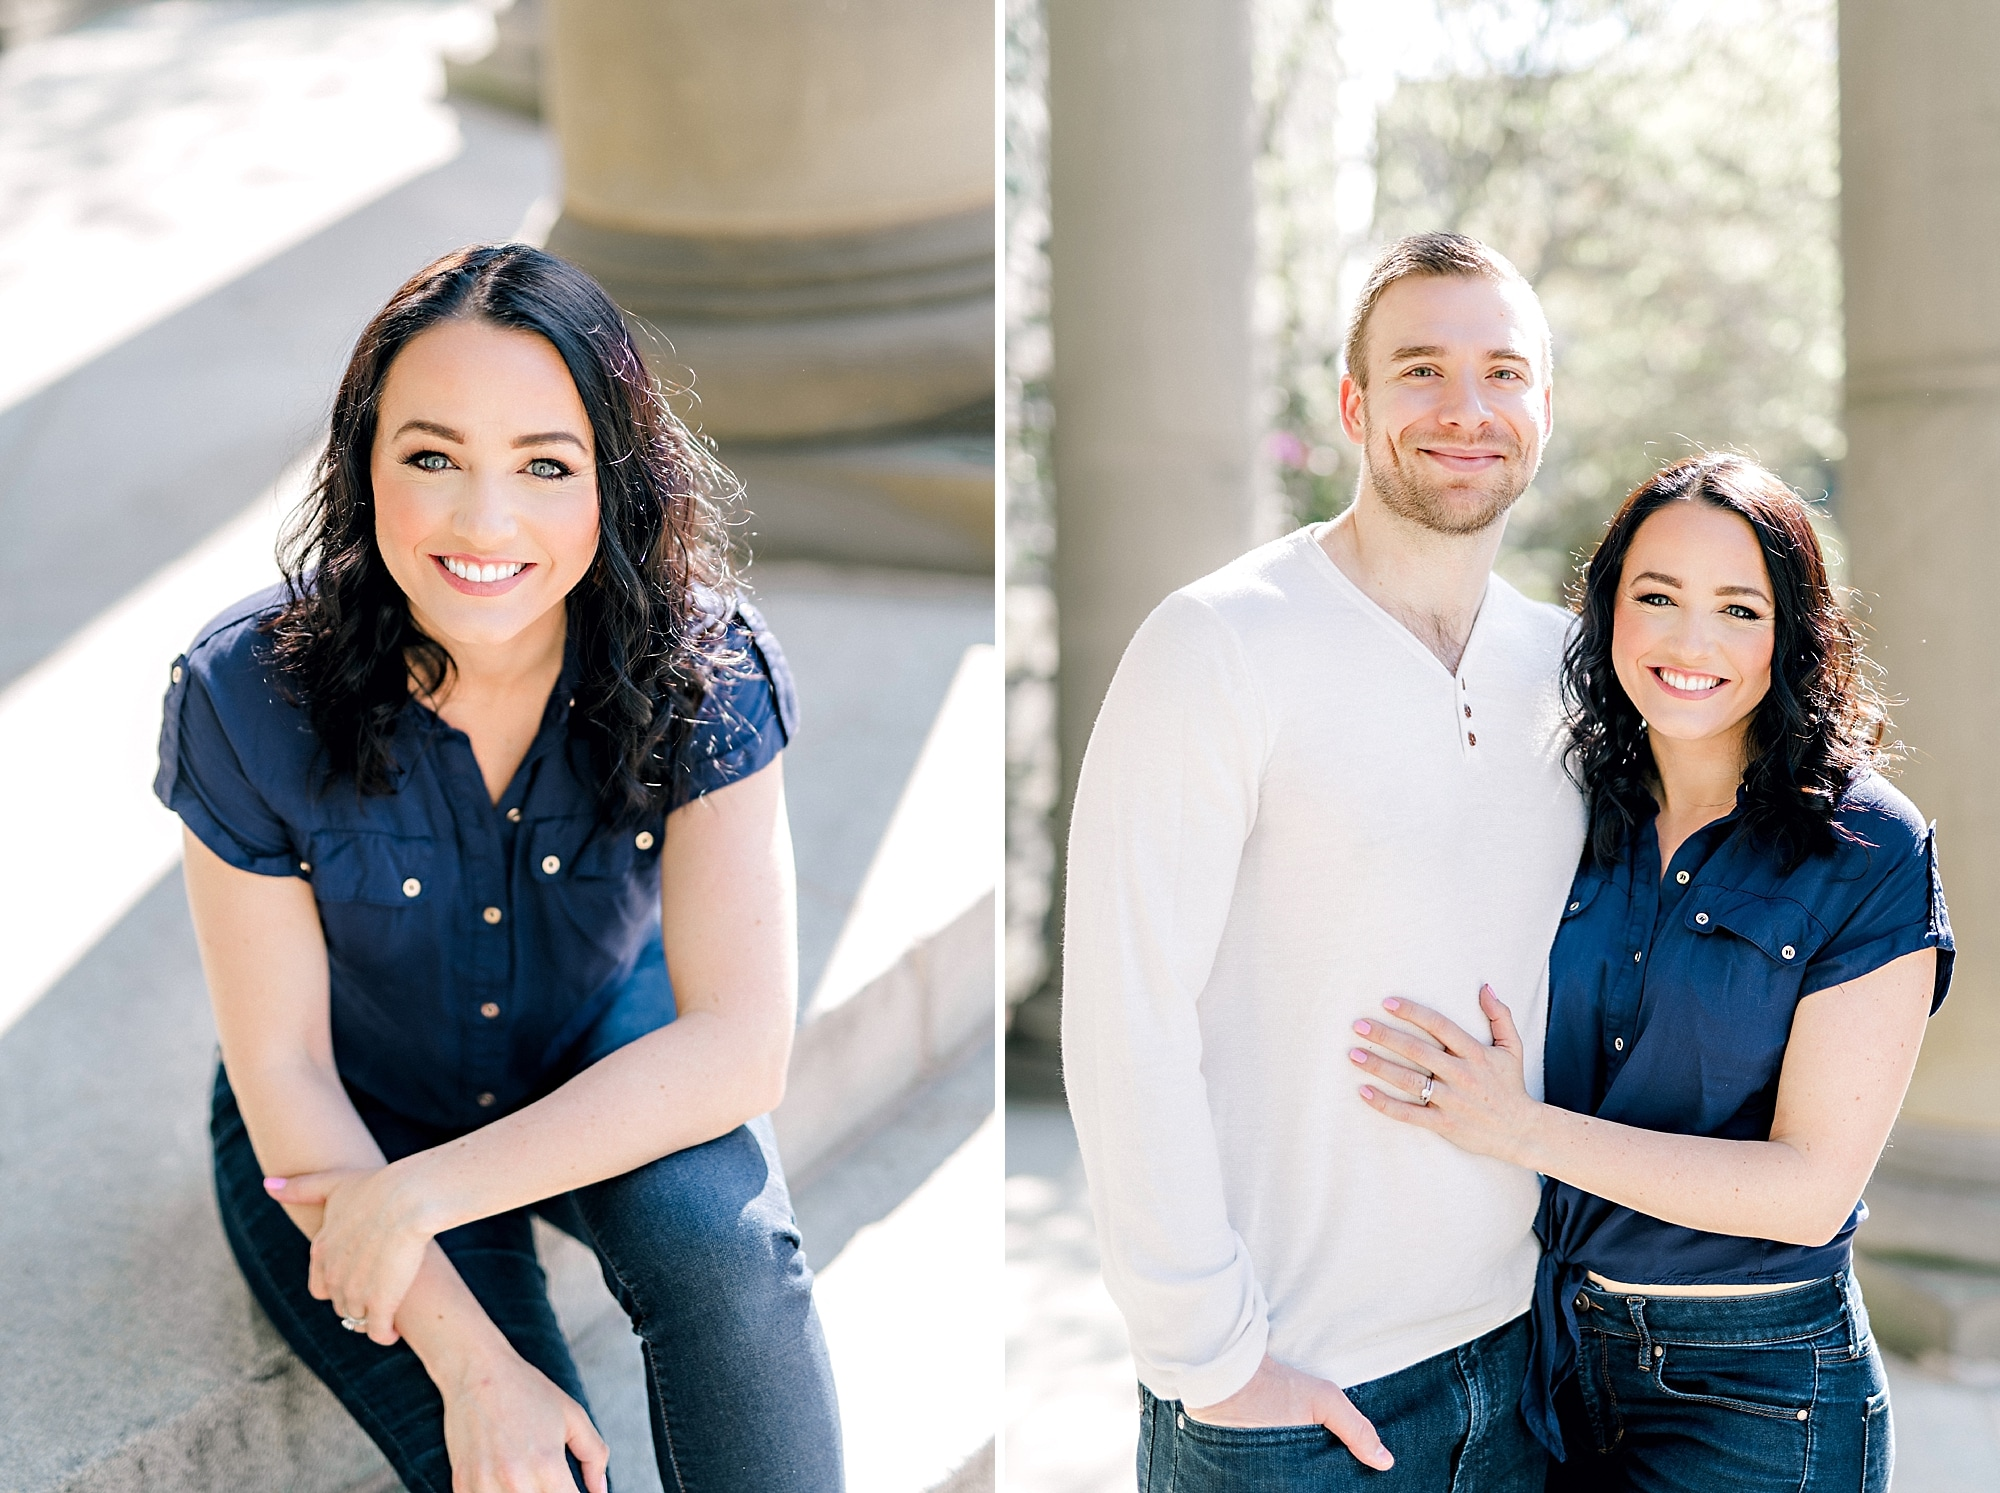 beautiful couple smiling for the camera during their family photoshoot